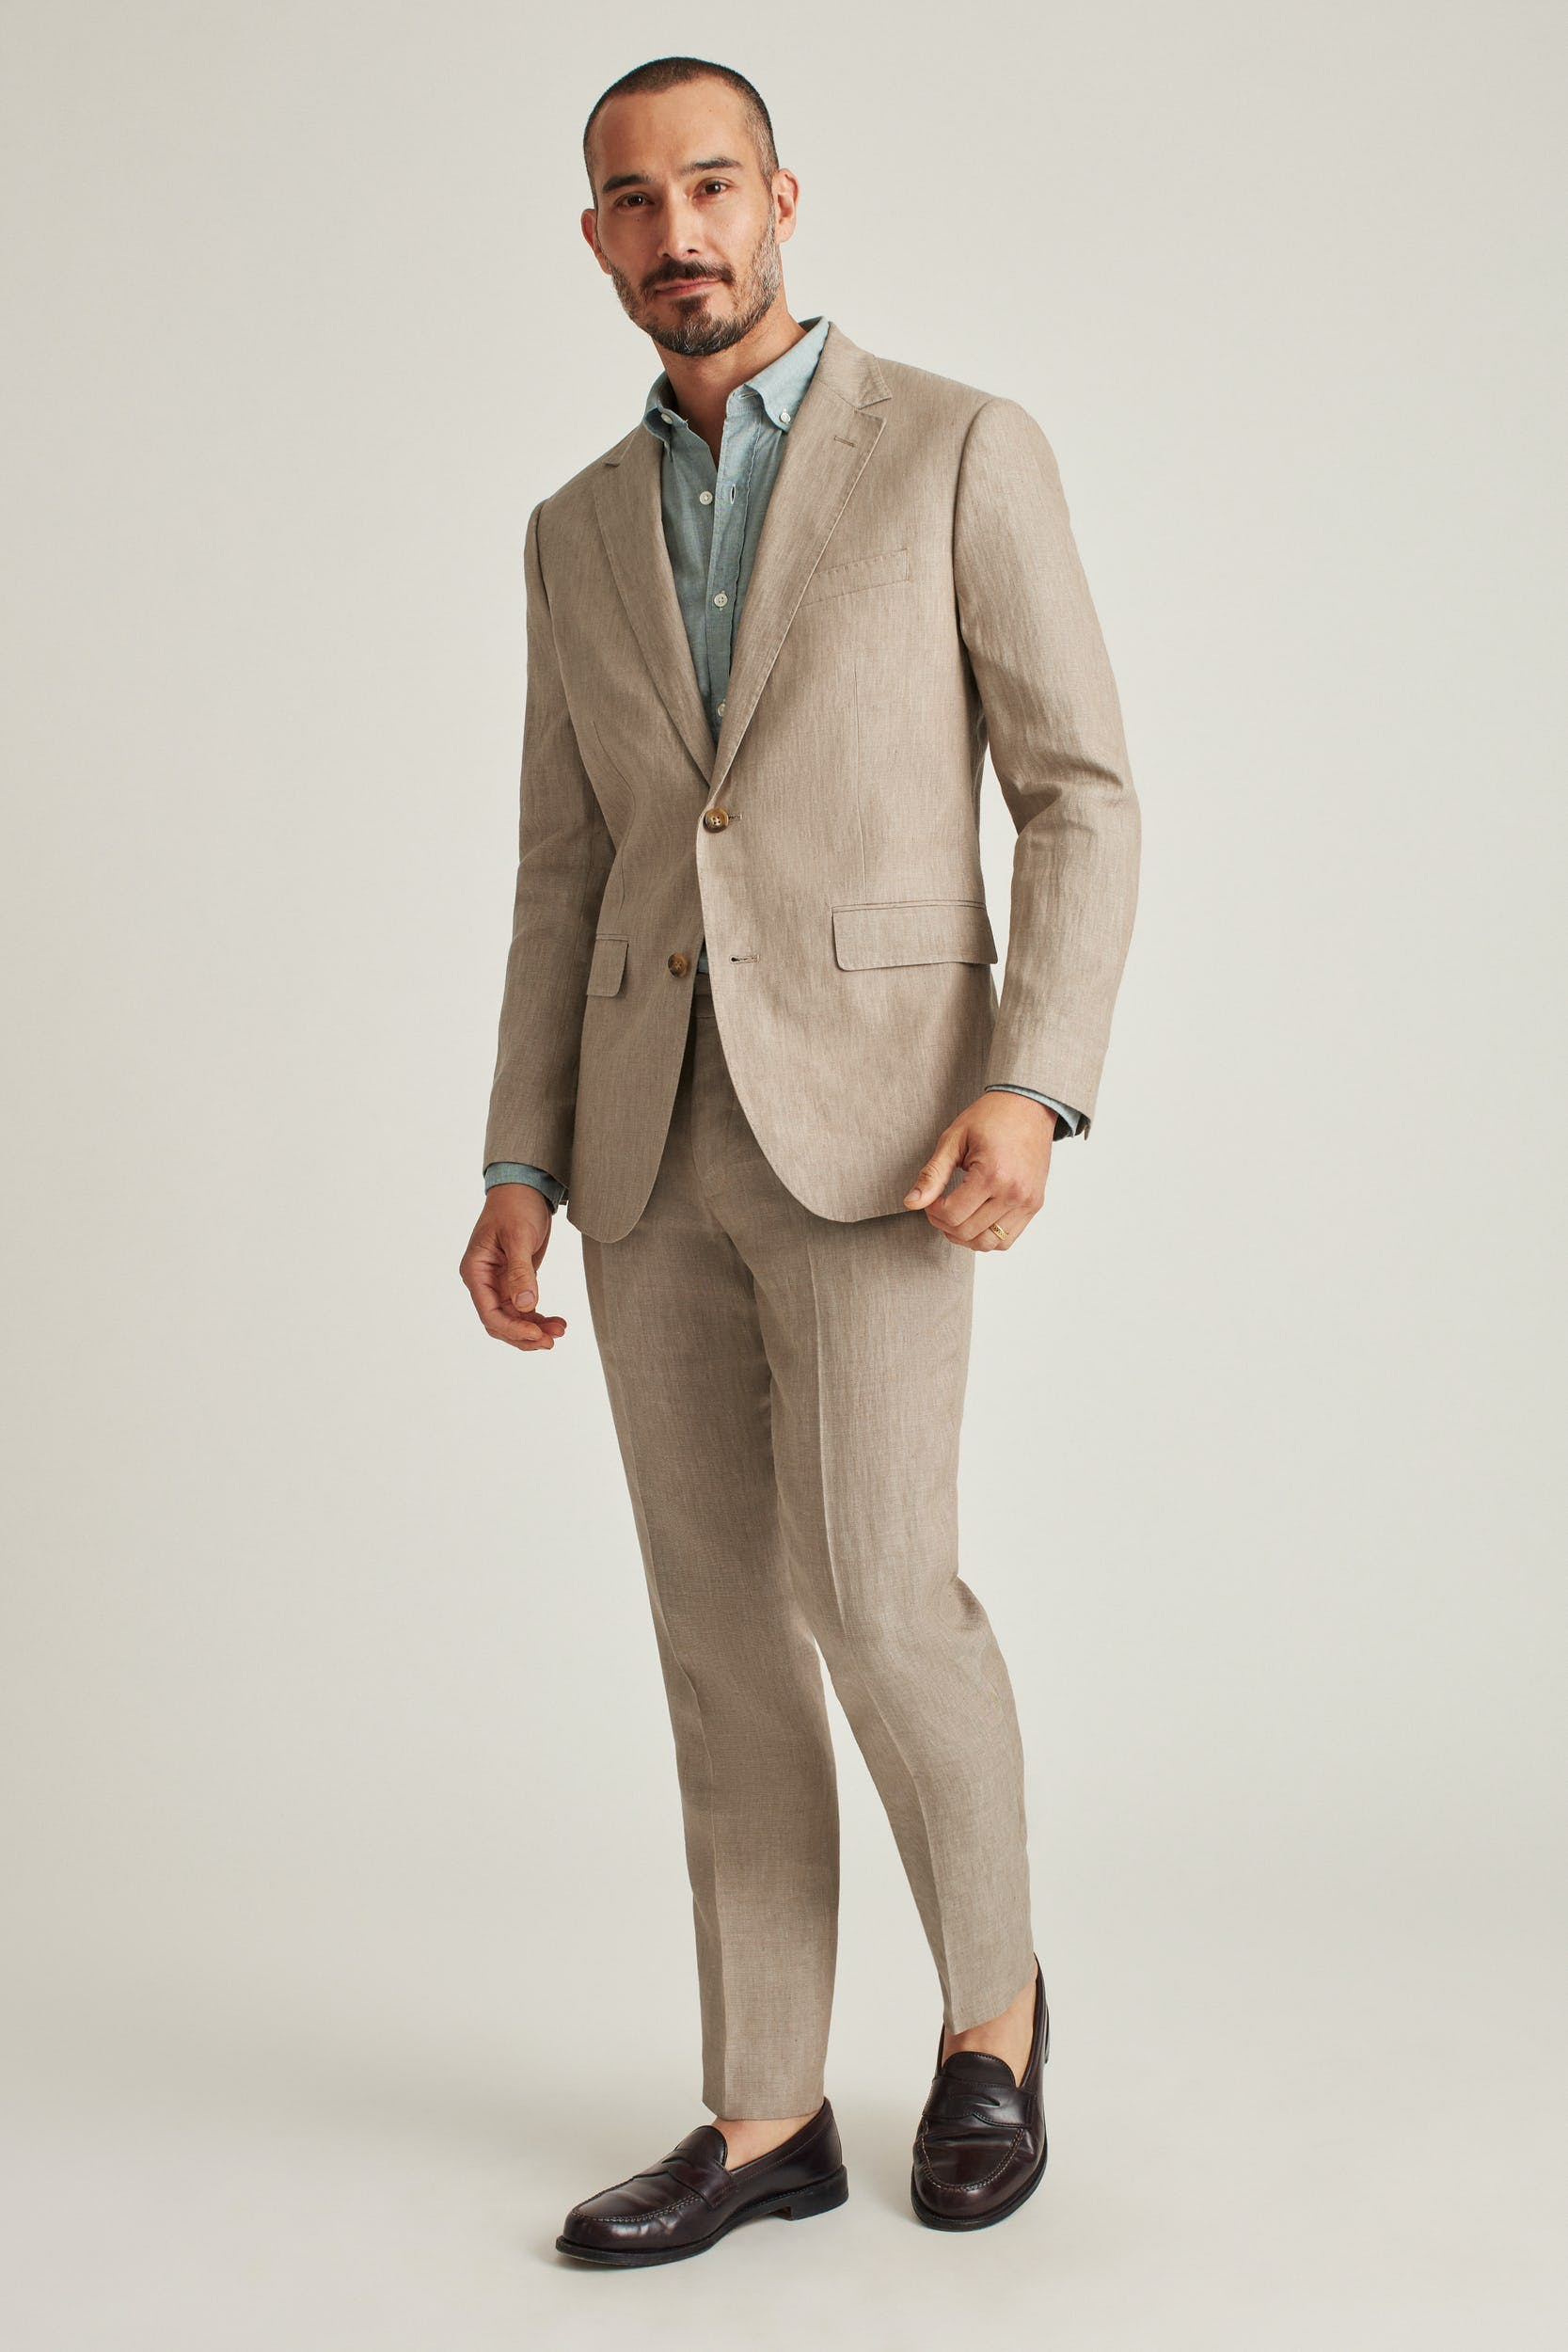 Shop Suits and Blazers